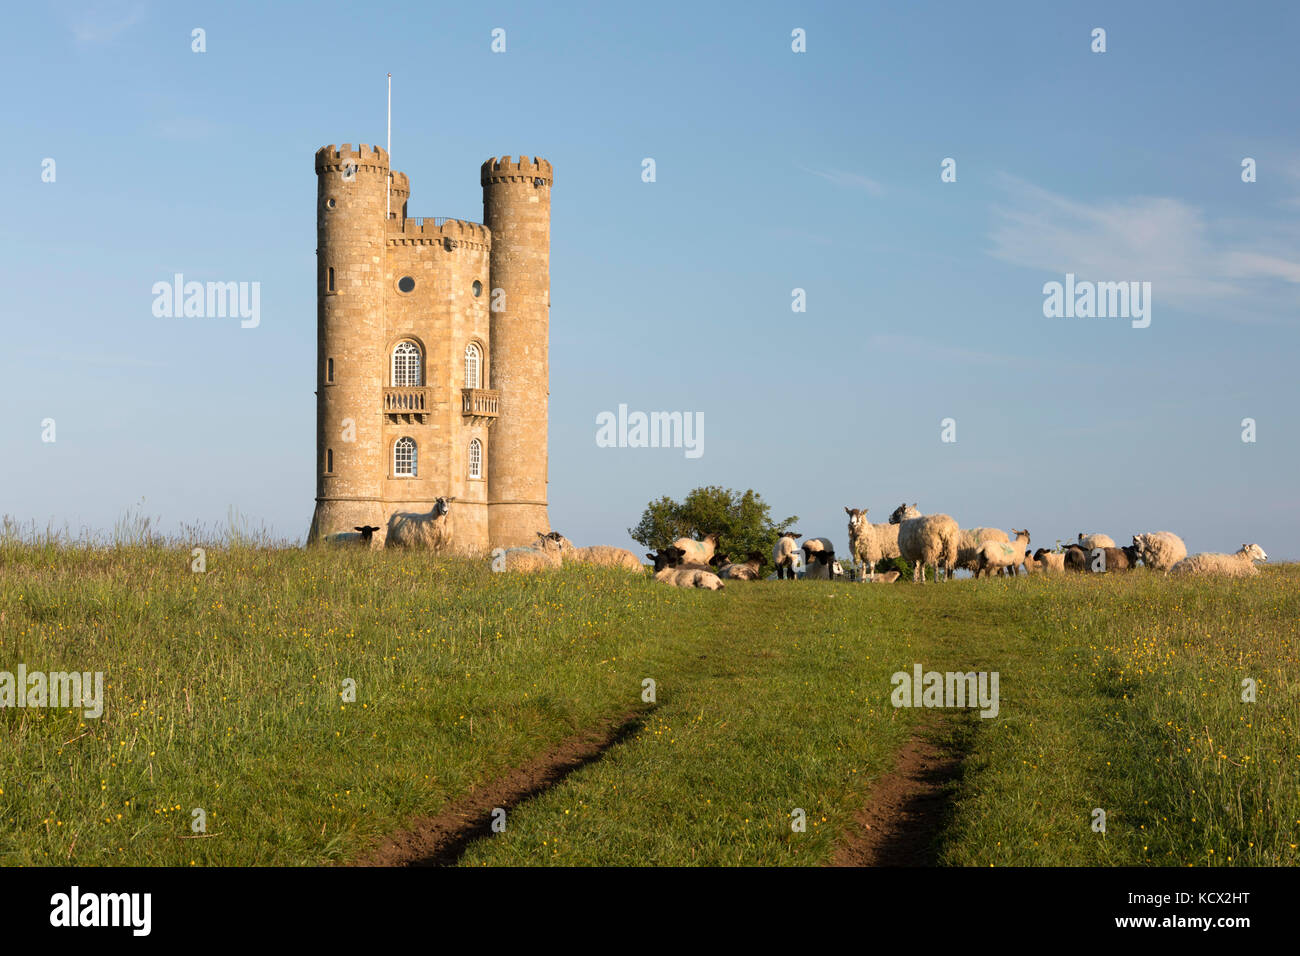 Broadway Tower with grazing sheep in grass field, Broadway, Cotswolds, Worcestershire, England, United Kingdom, - Stock Image